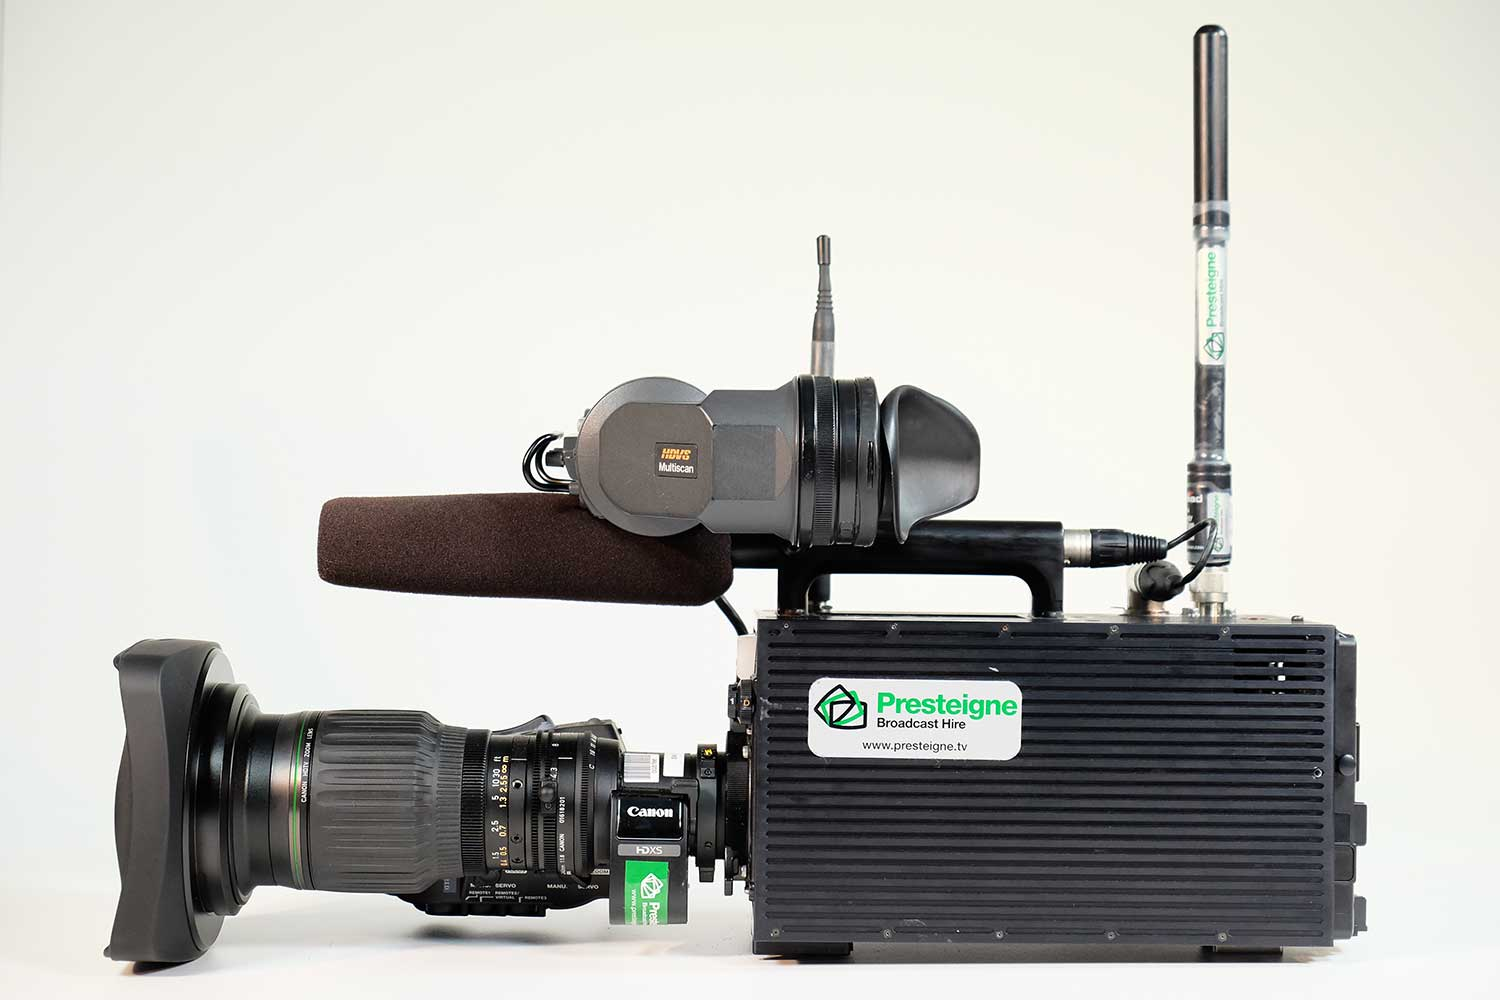 The new camera is a touchline wireless camera system in a single package with high quality andlow latency.